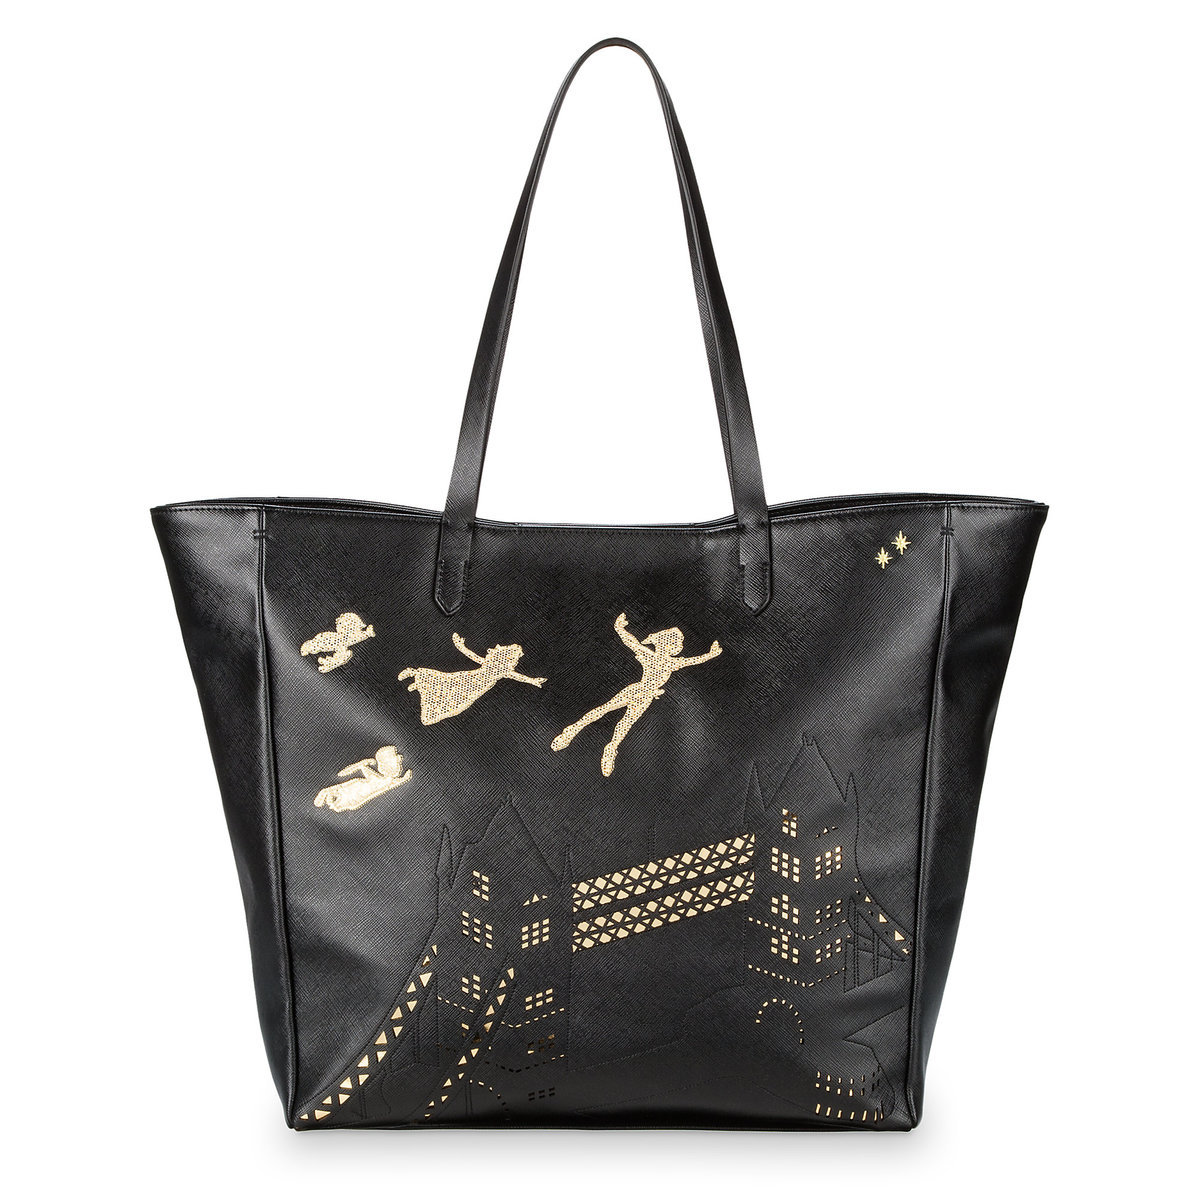 2bb6e205b75 Product Image of Peter Pan Tote Bag by Danielle Nicole   1